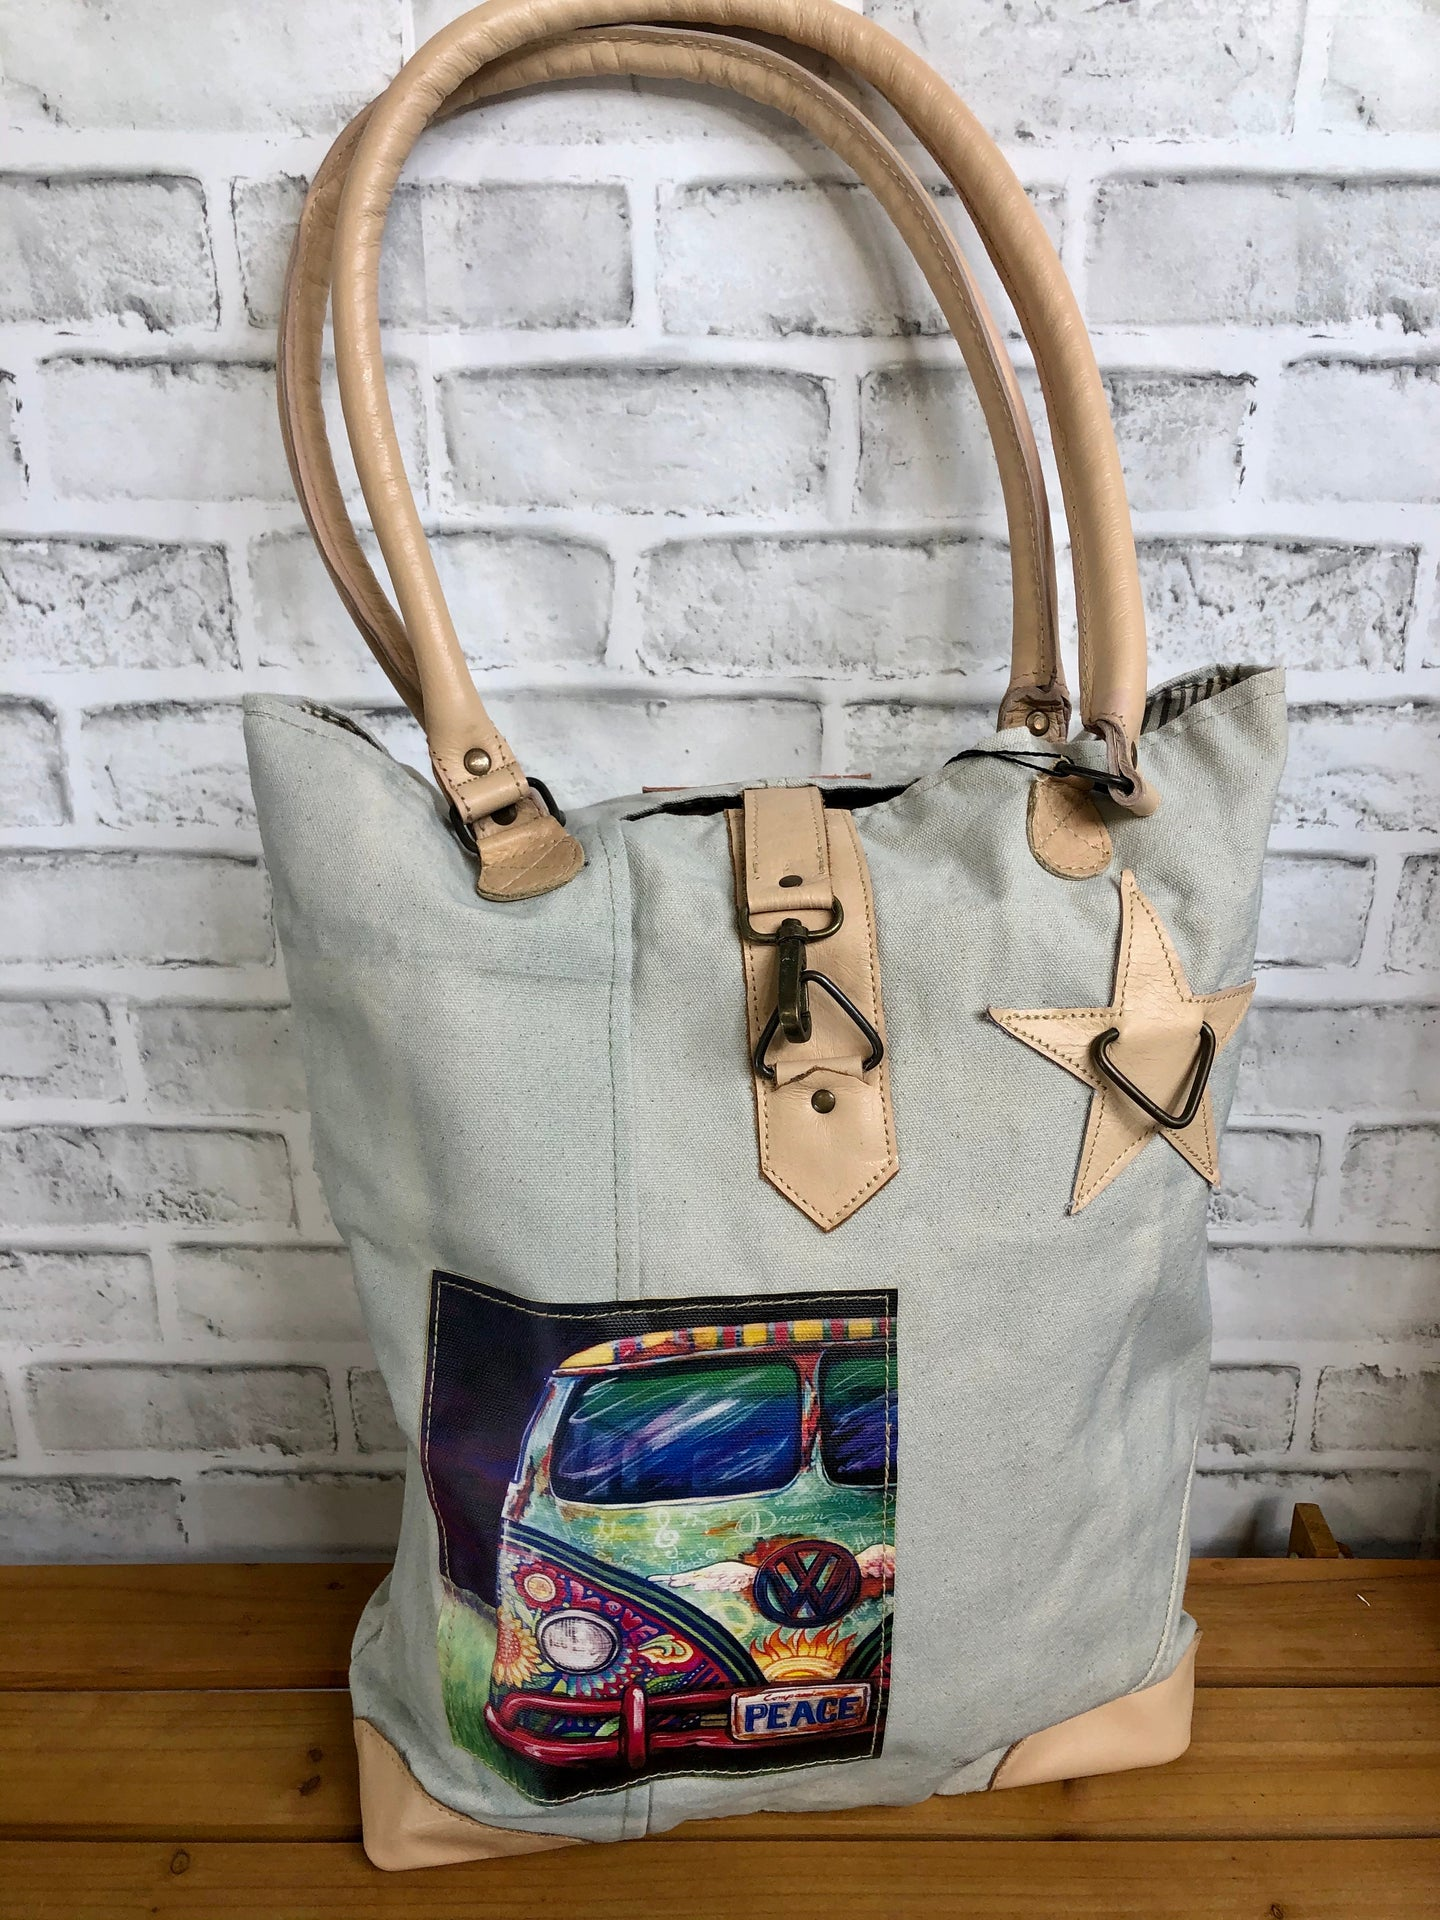 VW Peacemobile Canvas Tote